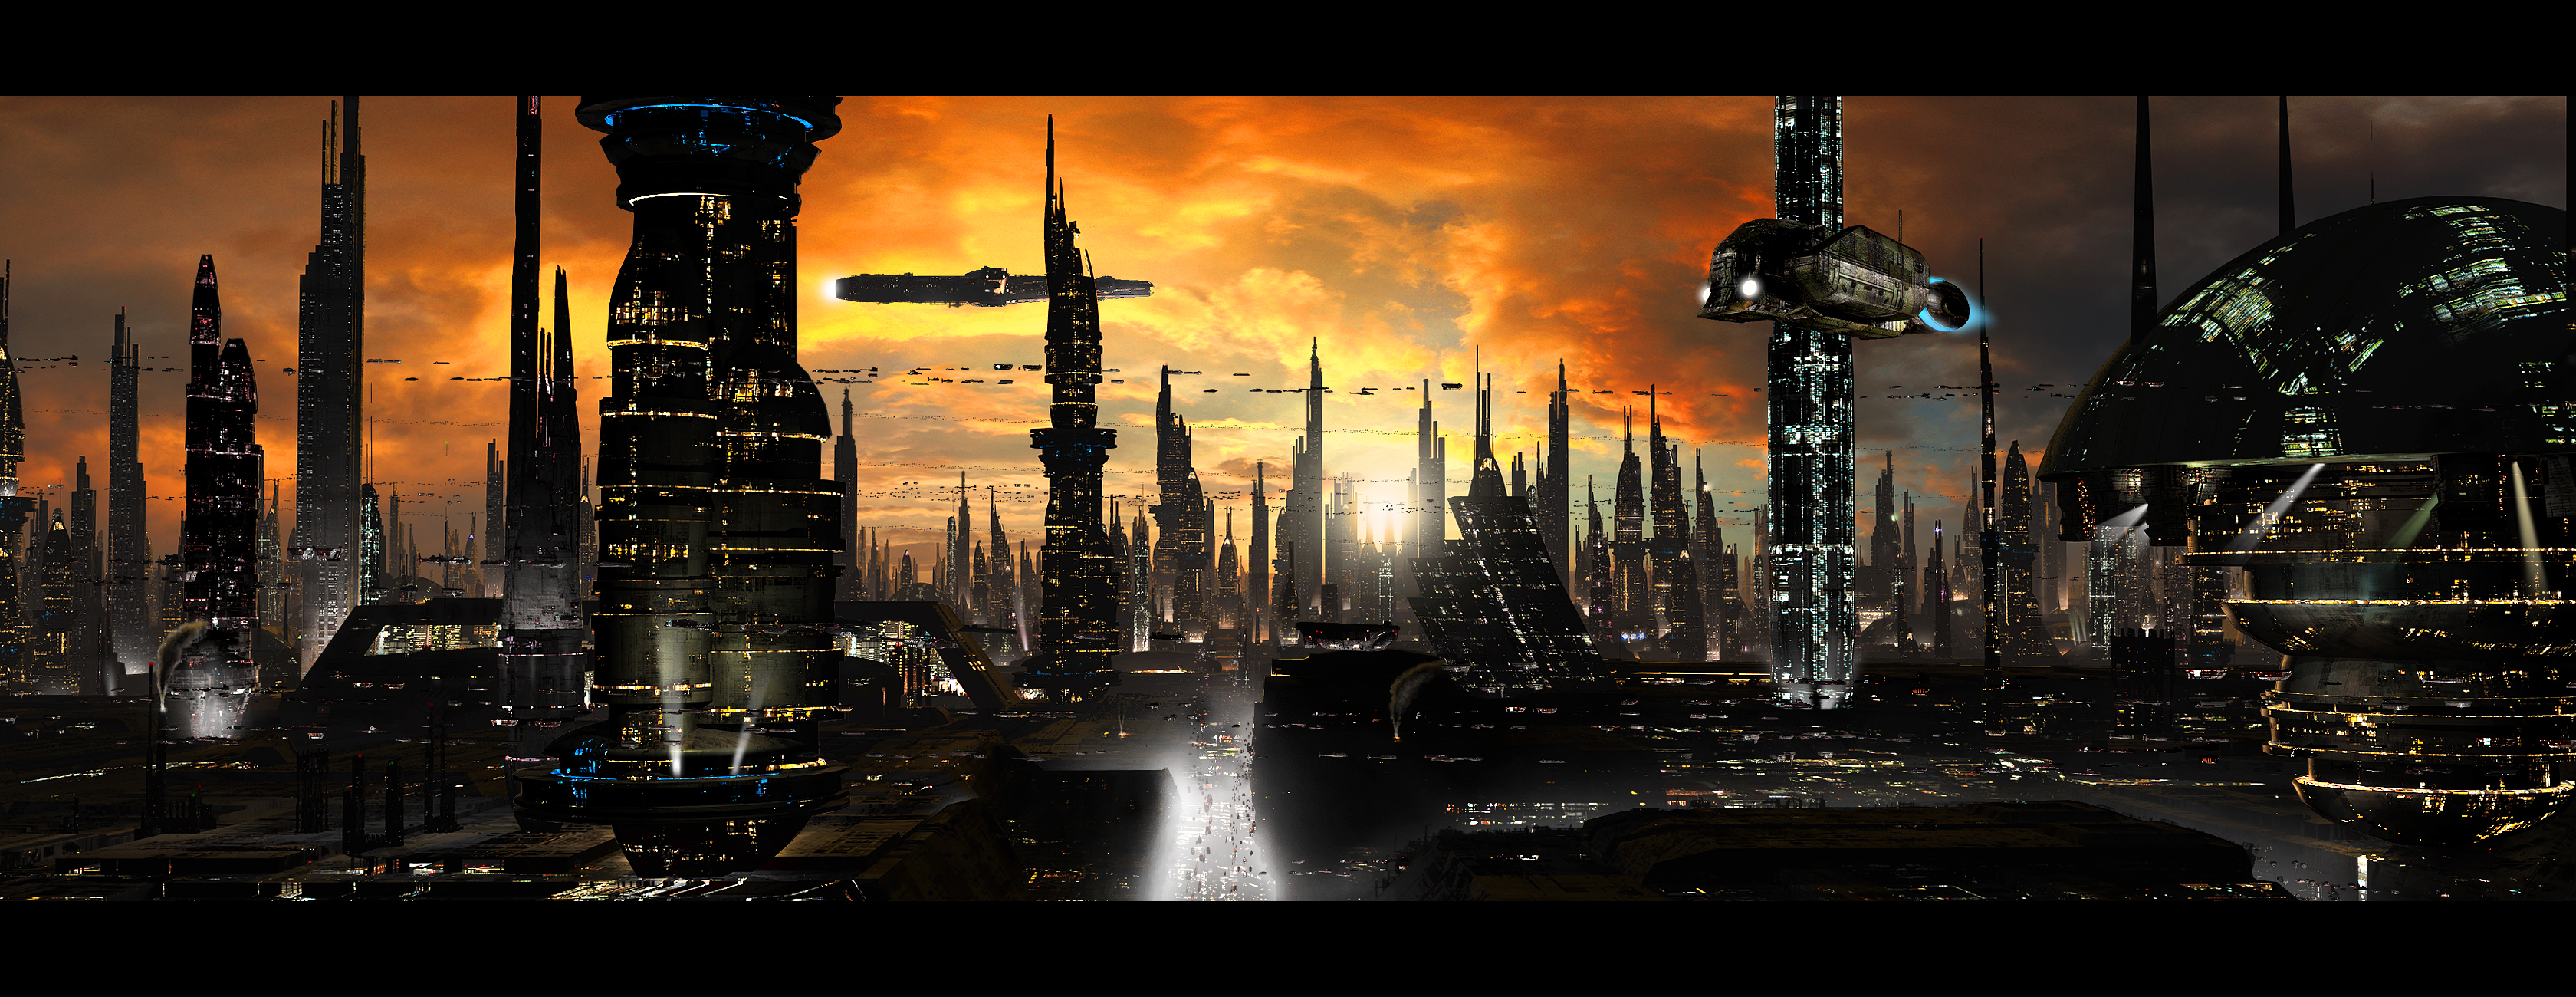 art futuristic cities - photo #38